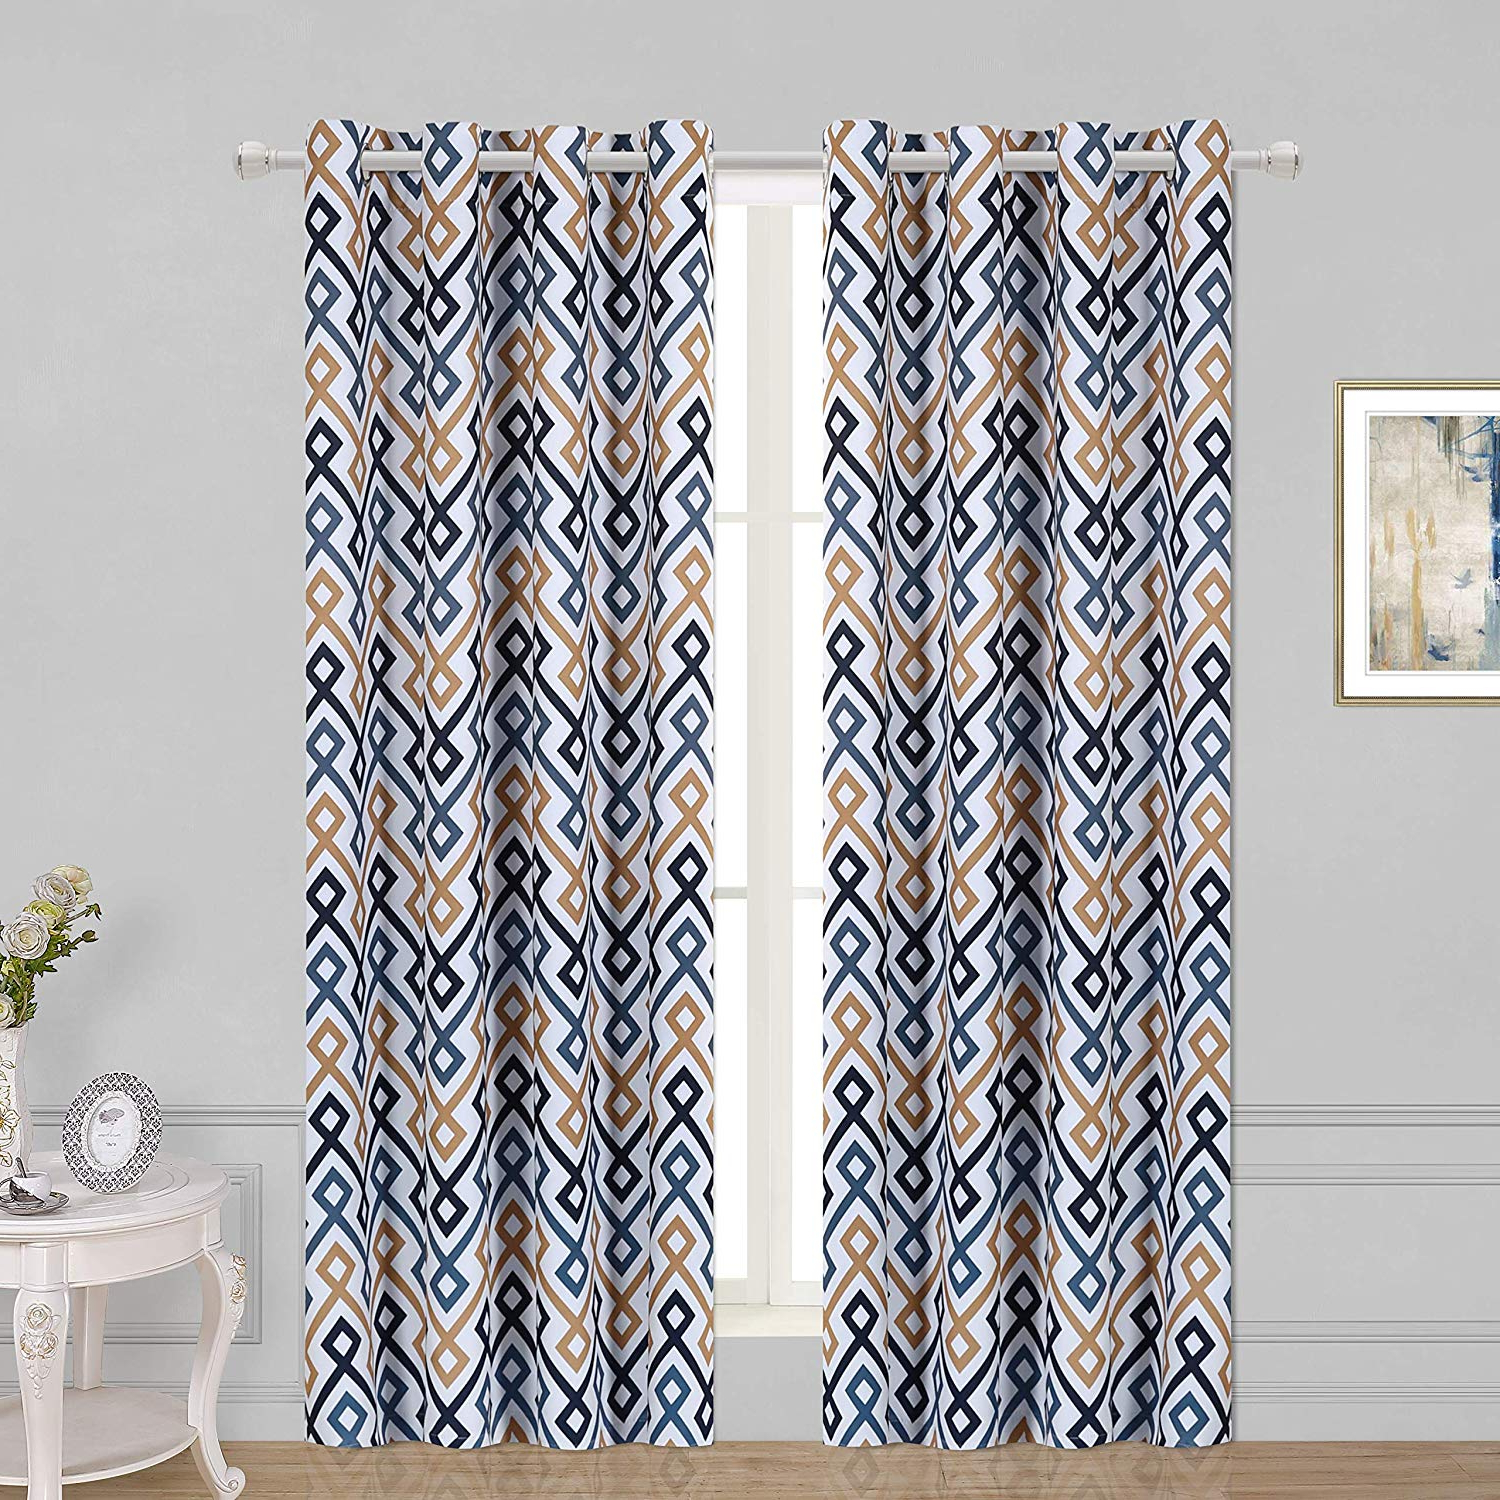 Best And Newest Geometric Print Textured Thermal Insulated Grommet Curtain Panels Inside Wontex Geometric Trellis Printed Thermal Insulated Blackout Curtains, Grommet Room Darkening Curtains For Living Room And Bedroom, Set Of 2 Curtain (View 9 of 20)